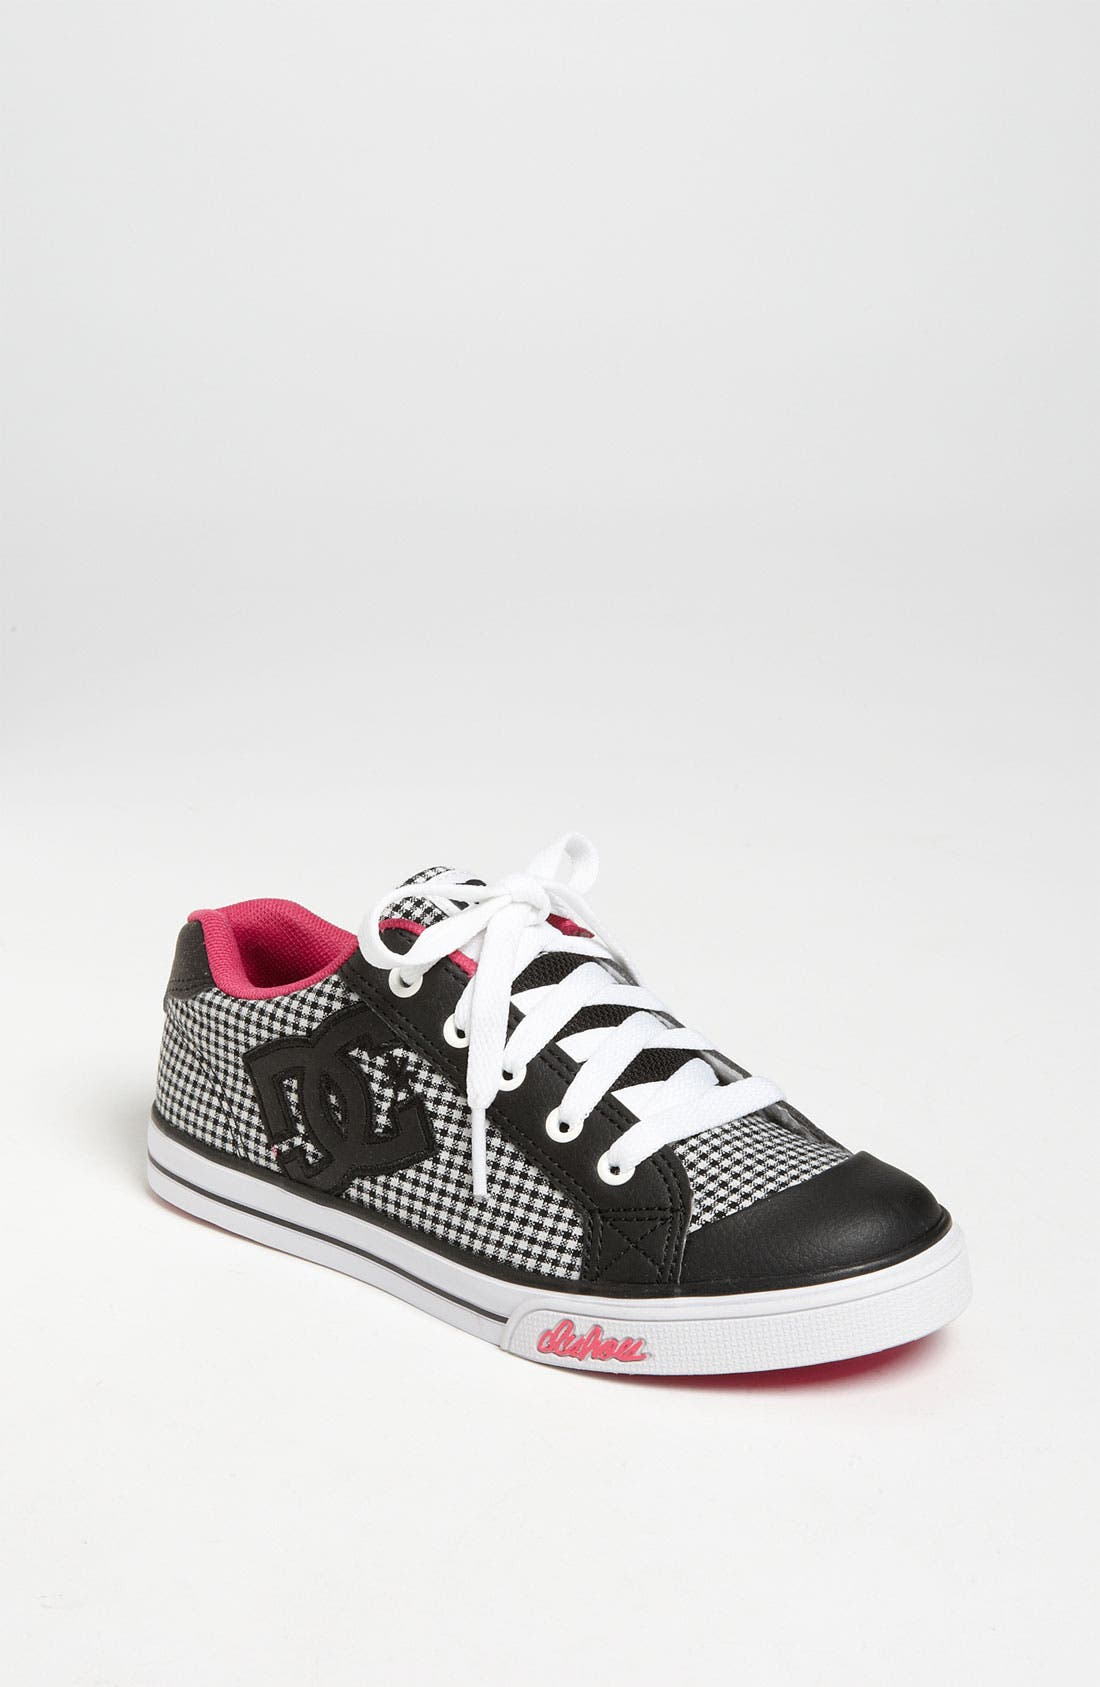 Main Image - DC Shoes 'Chelsea Charm' Sneaker (Toddler, Little Kid & Big Kid)